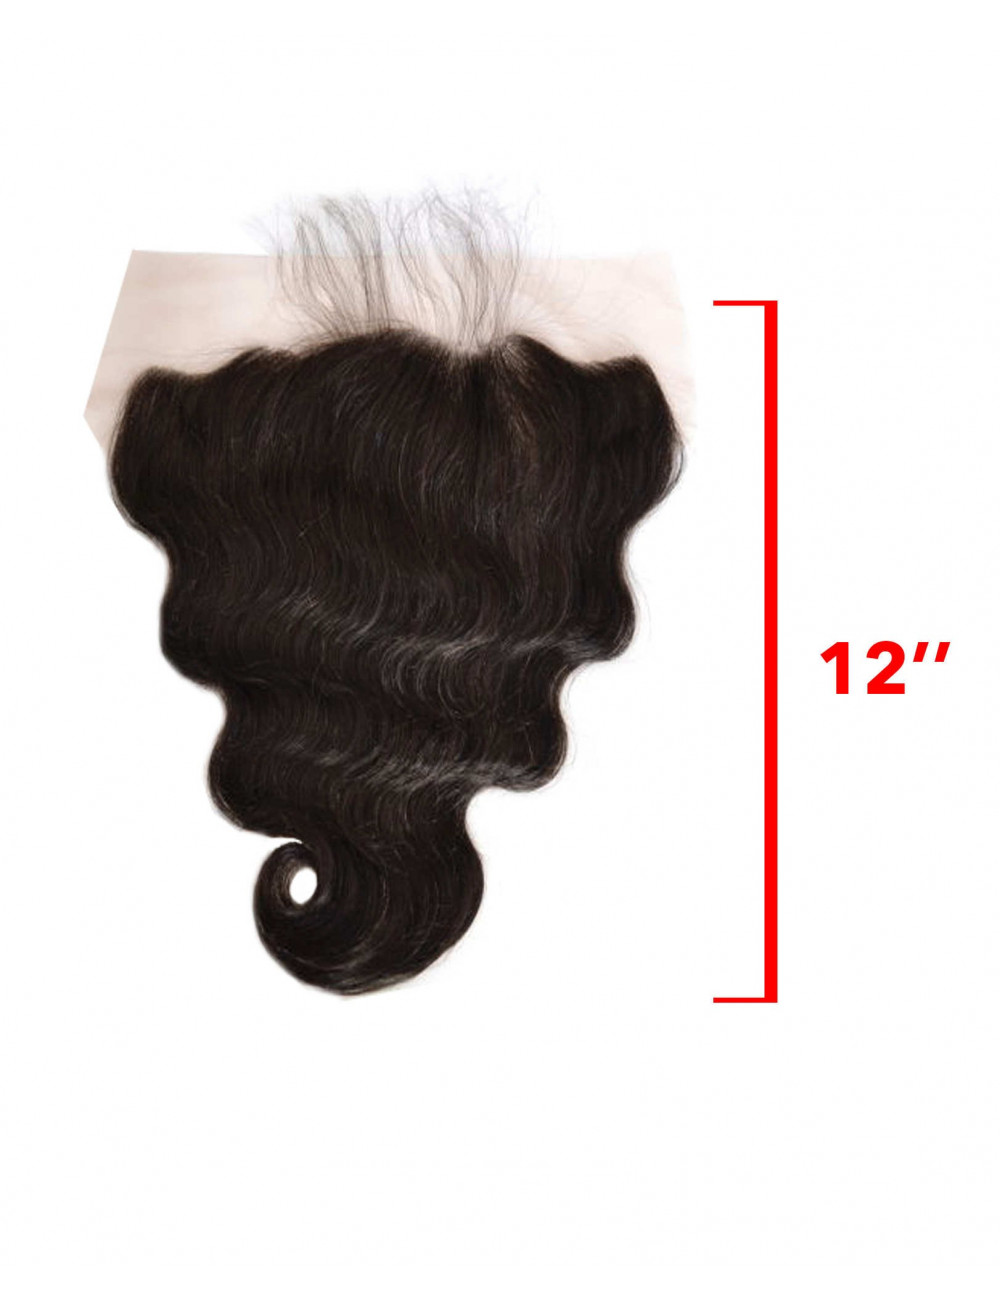 Mèches chinoises lace frontal ondulé 12""